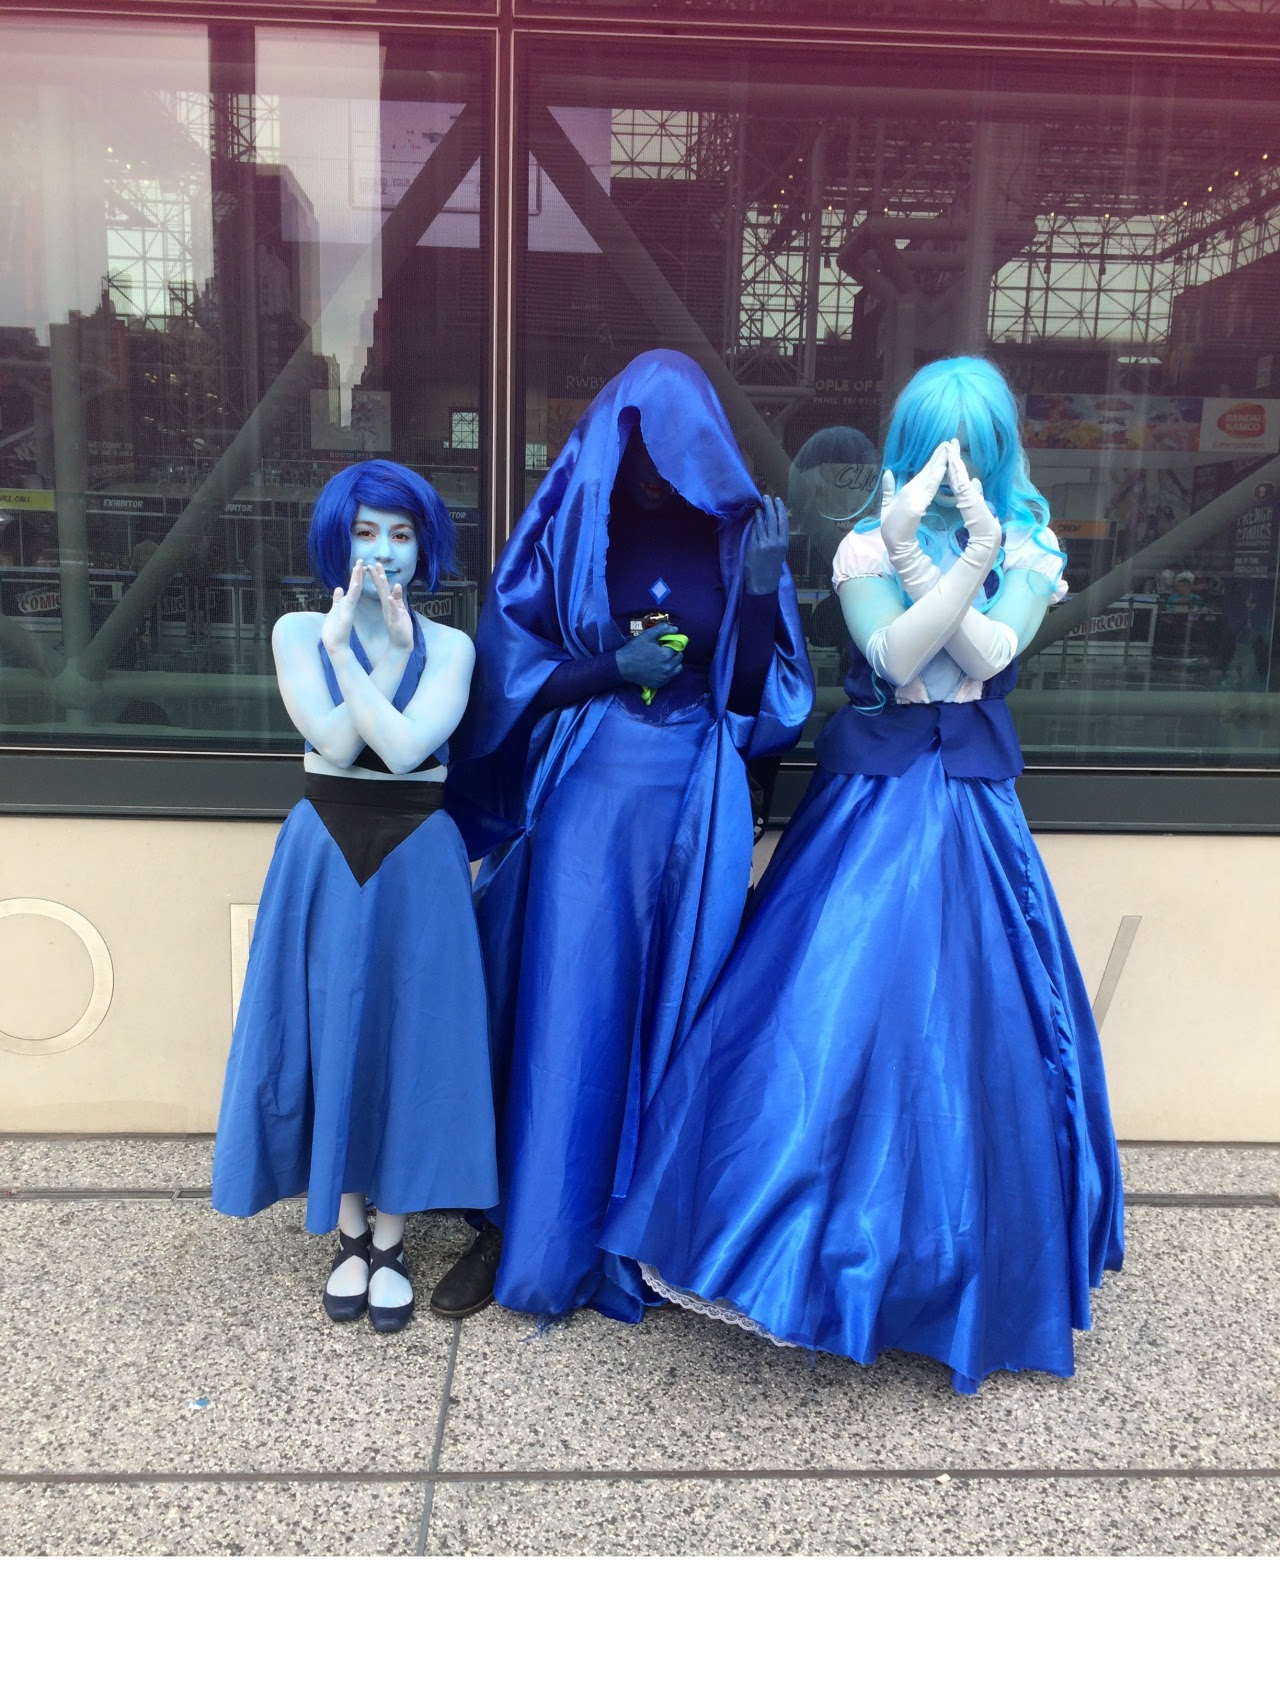 in honor of the first year anniversary of the Answer, this is my cosplay from last year's NYCC as Sapphire from the Answer with lapis and Blue Diamond all together as Blue Diamond's court